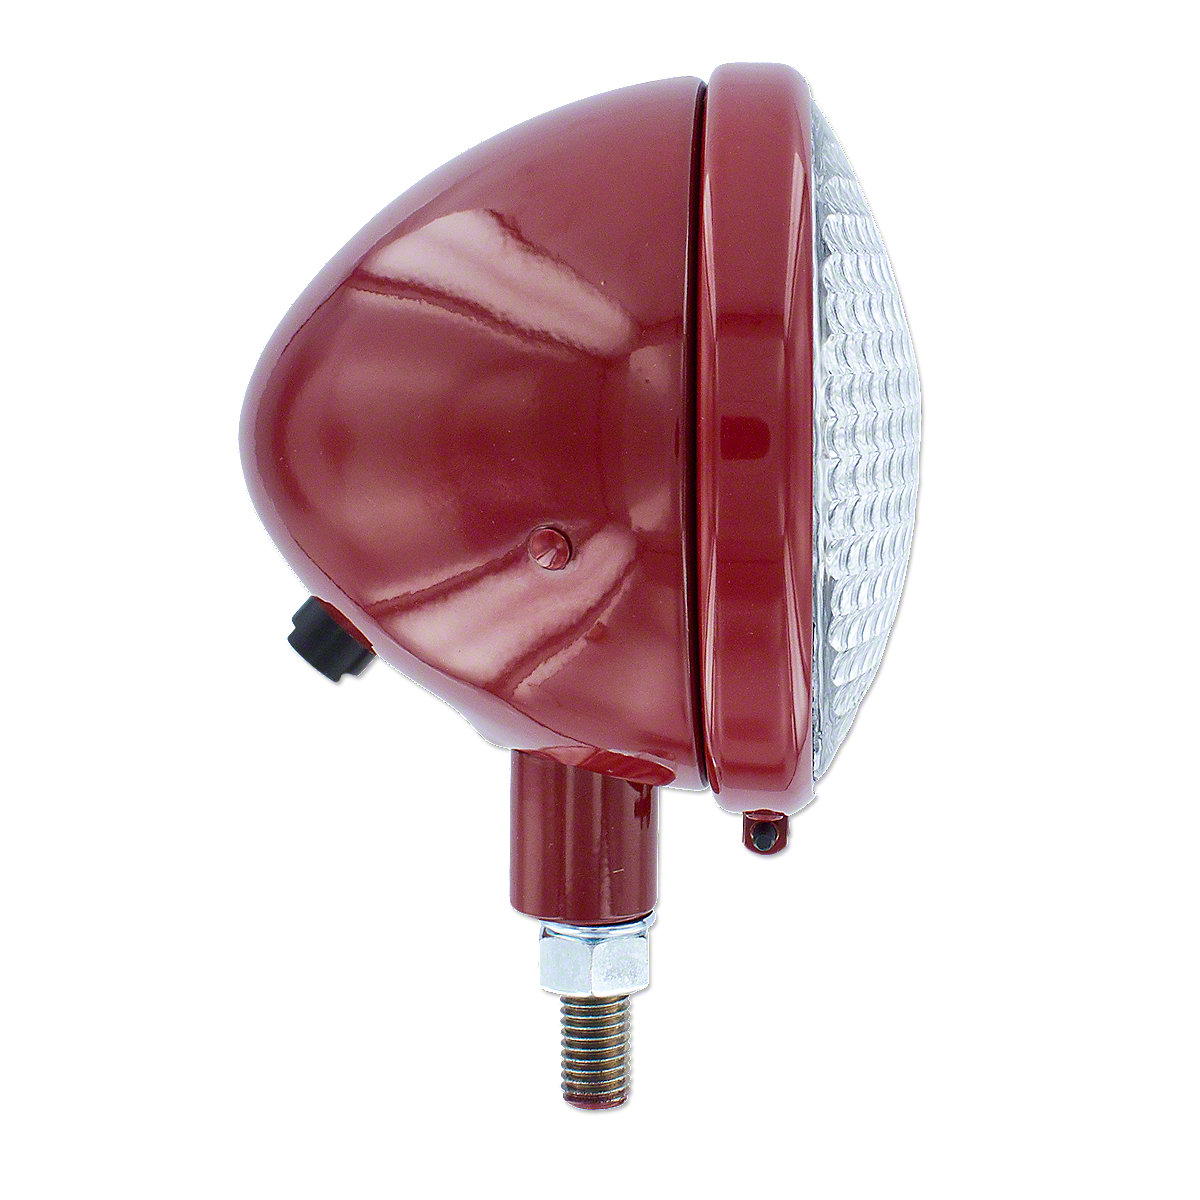 IHS351R12V Complete headlight assembly, red, 12V   ---   Fits many Farmall models